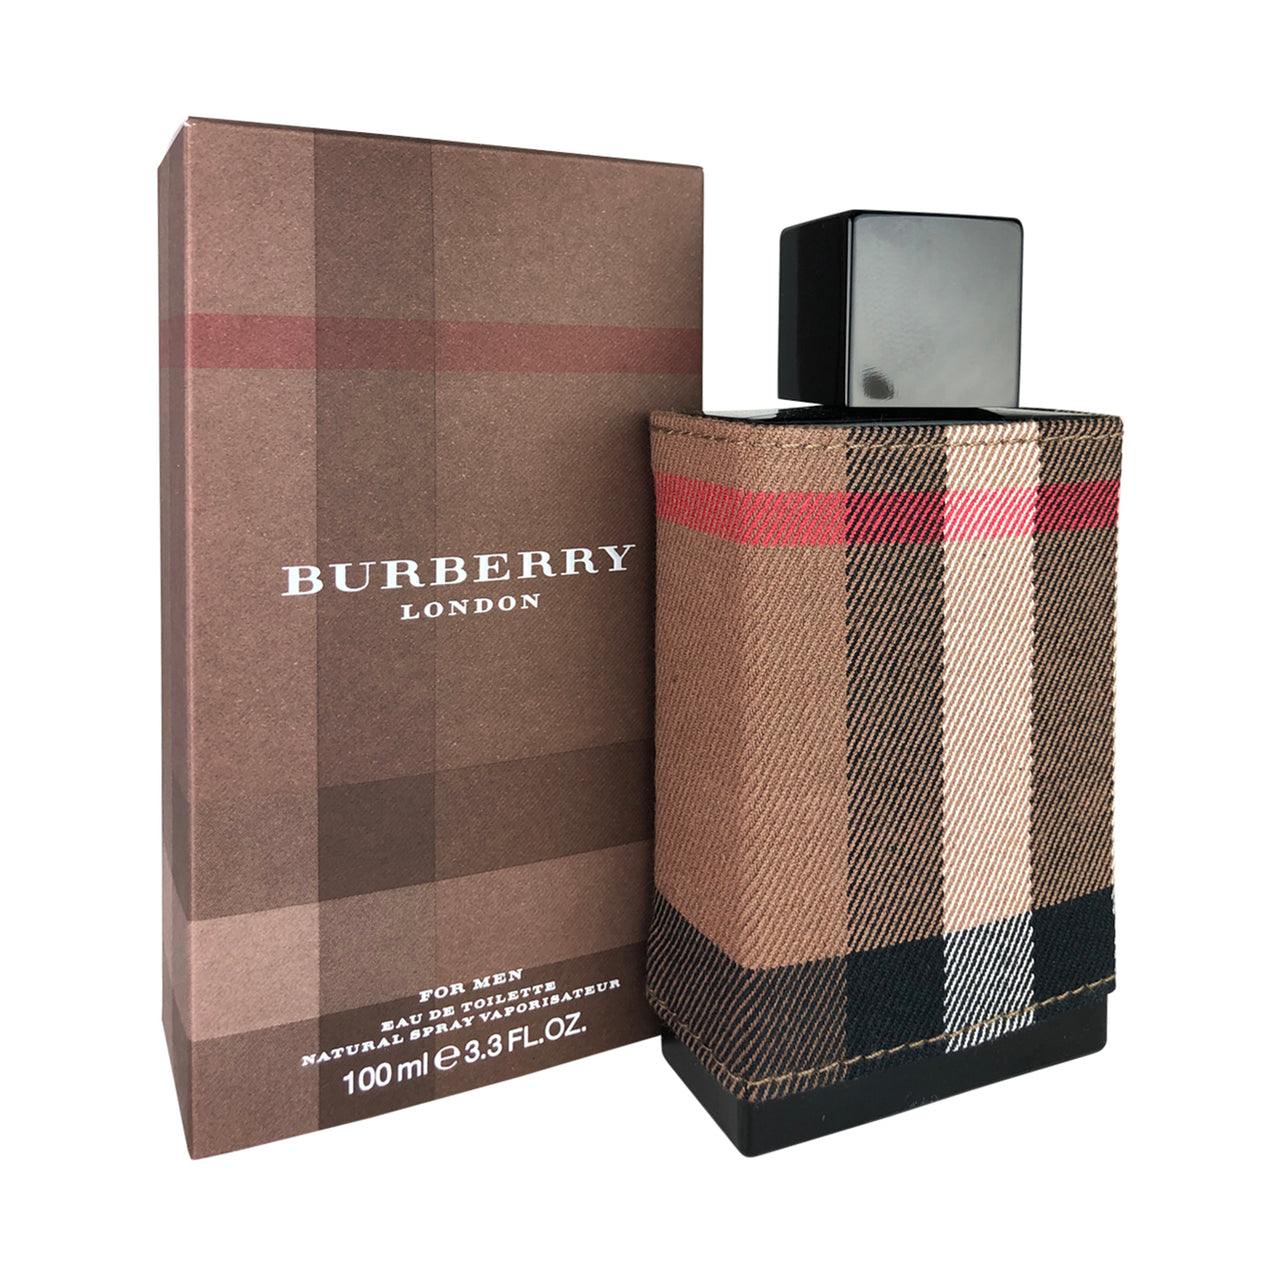 Burberry London for Men 3.3 oz Eau de Toilette Spray